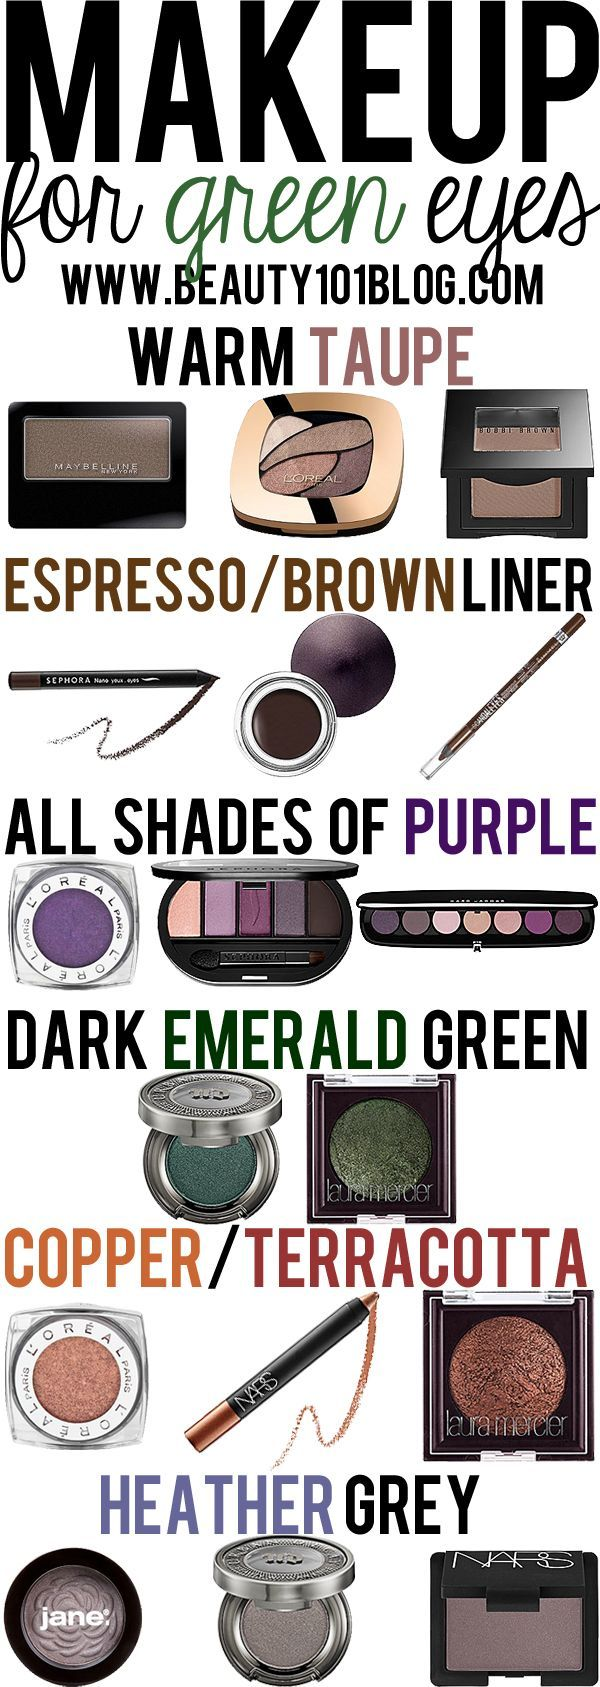 Love all these helpful articles with tips: what eyeshadows suit your eye colour?...